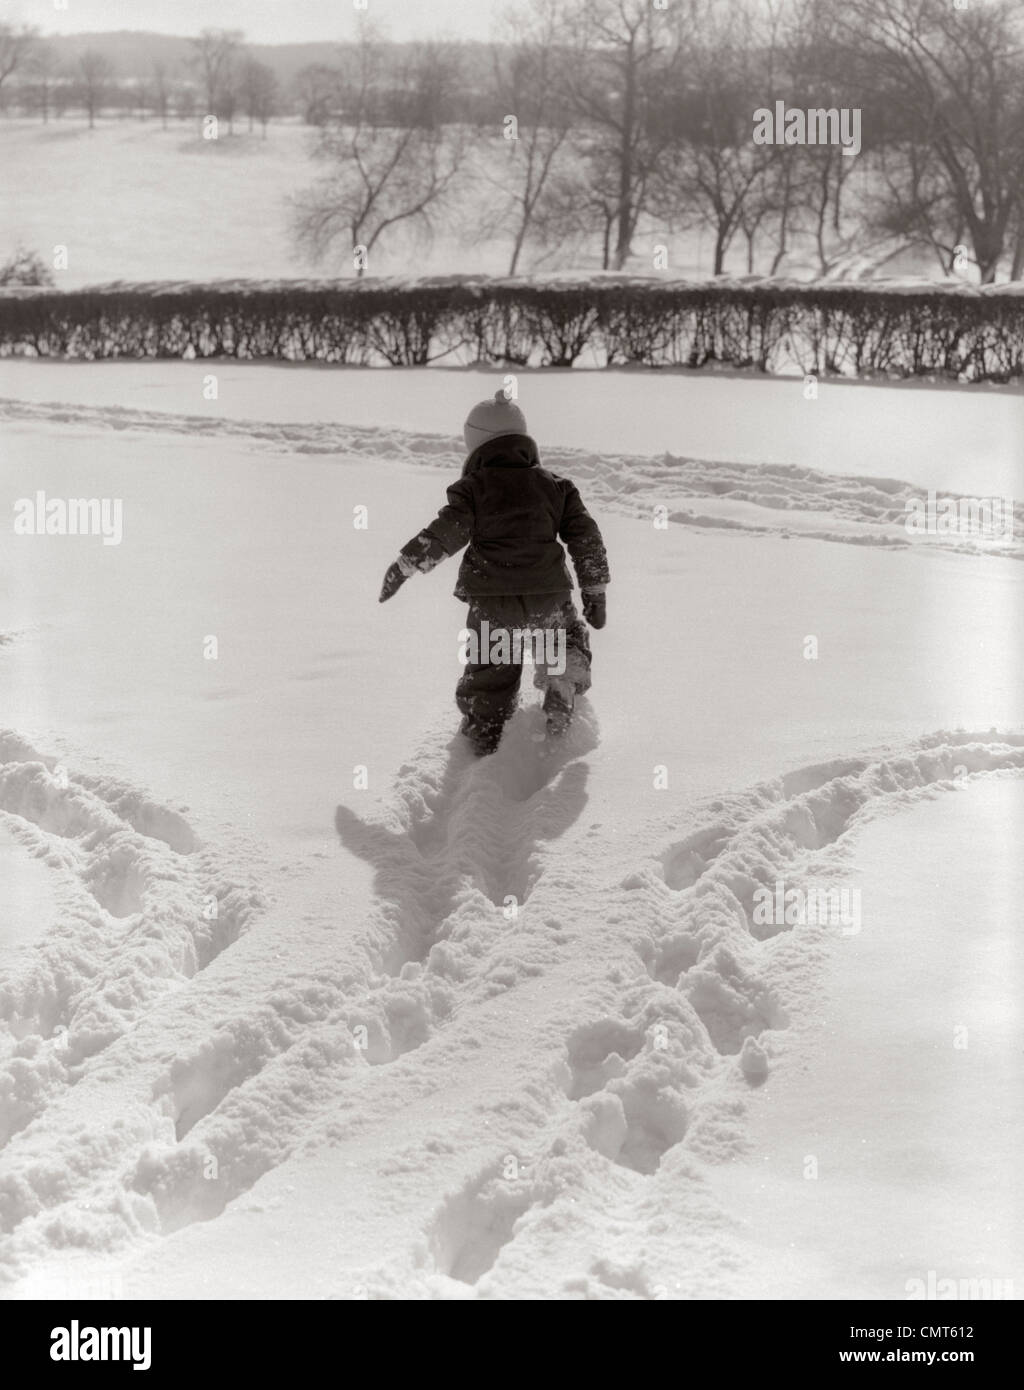 1950s BACK VIEW CHILD IN SNOWSUIT MAKING TRACKS IN FRESH SNOW OUTDOOR - Stock Image